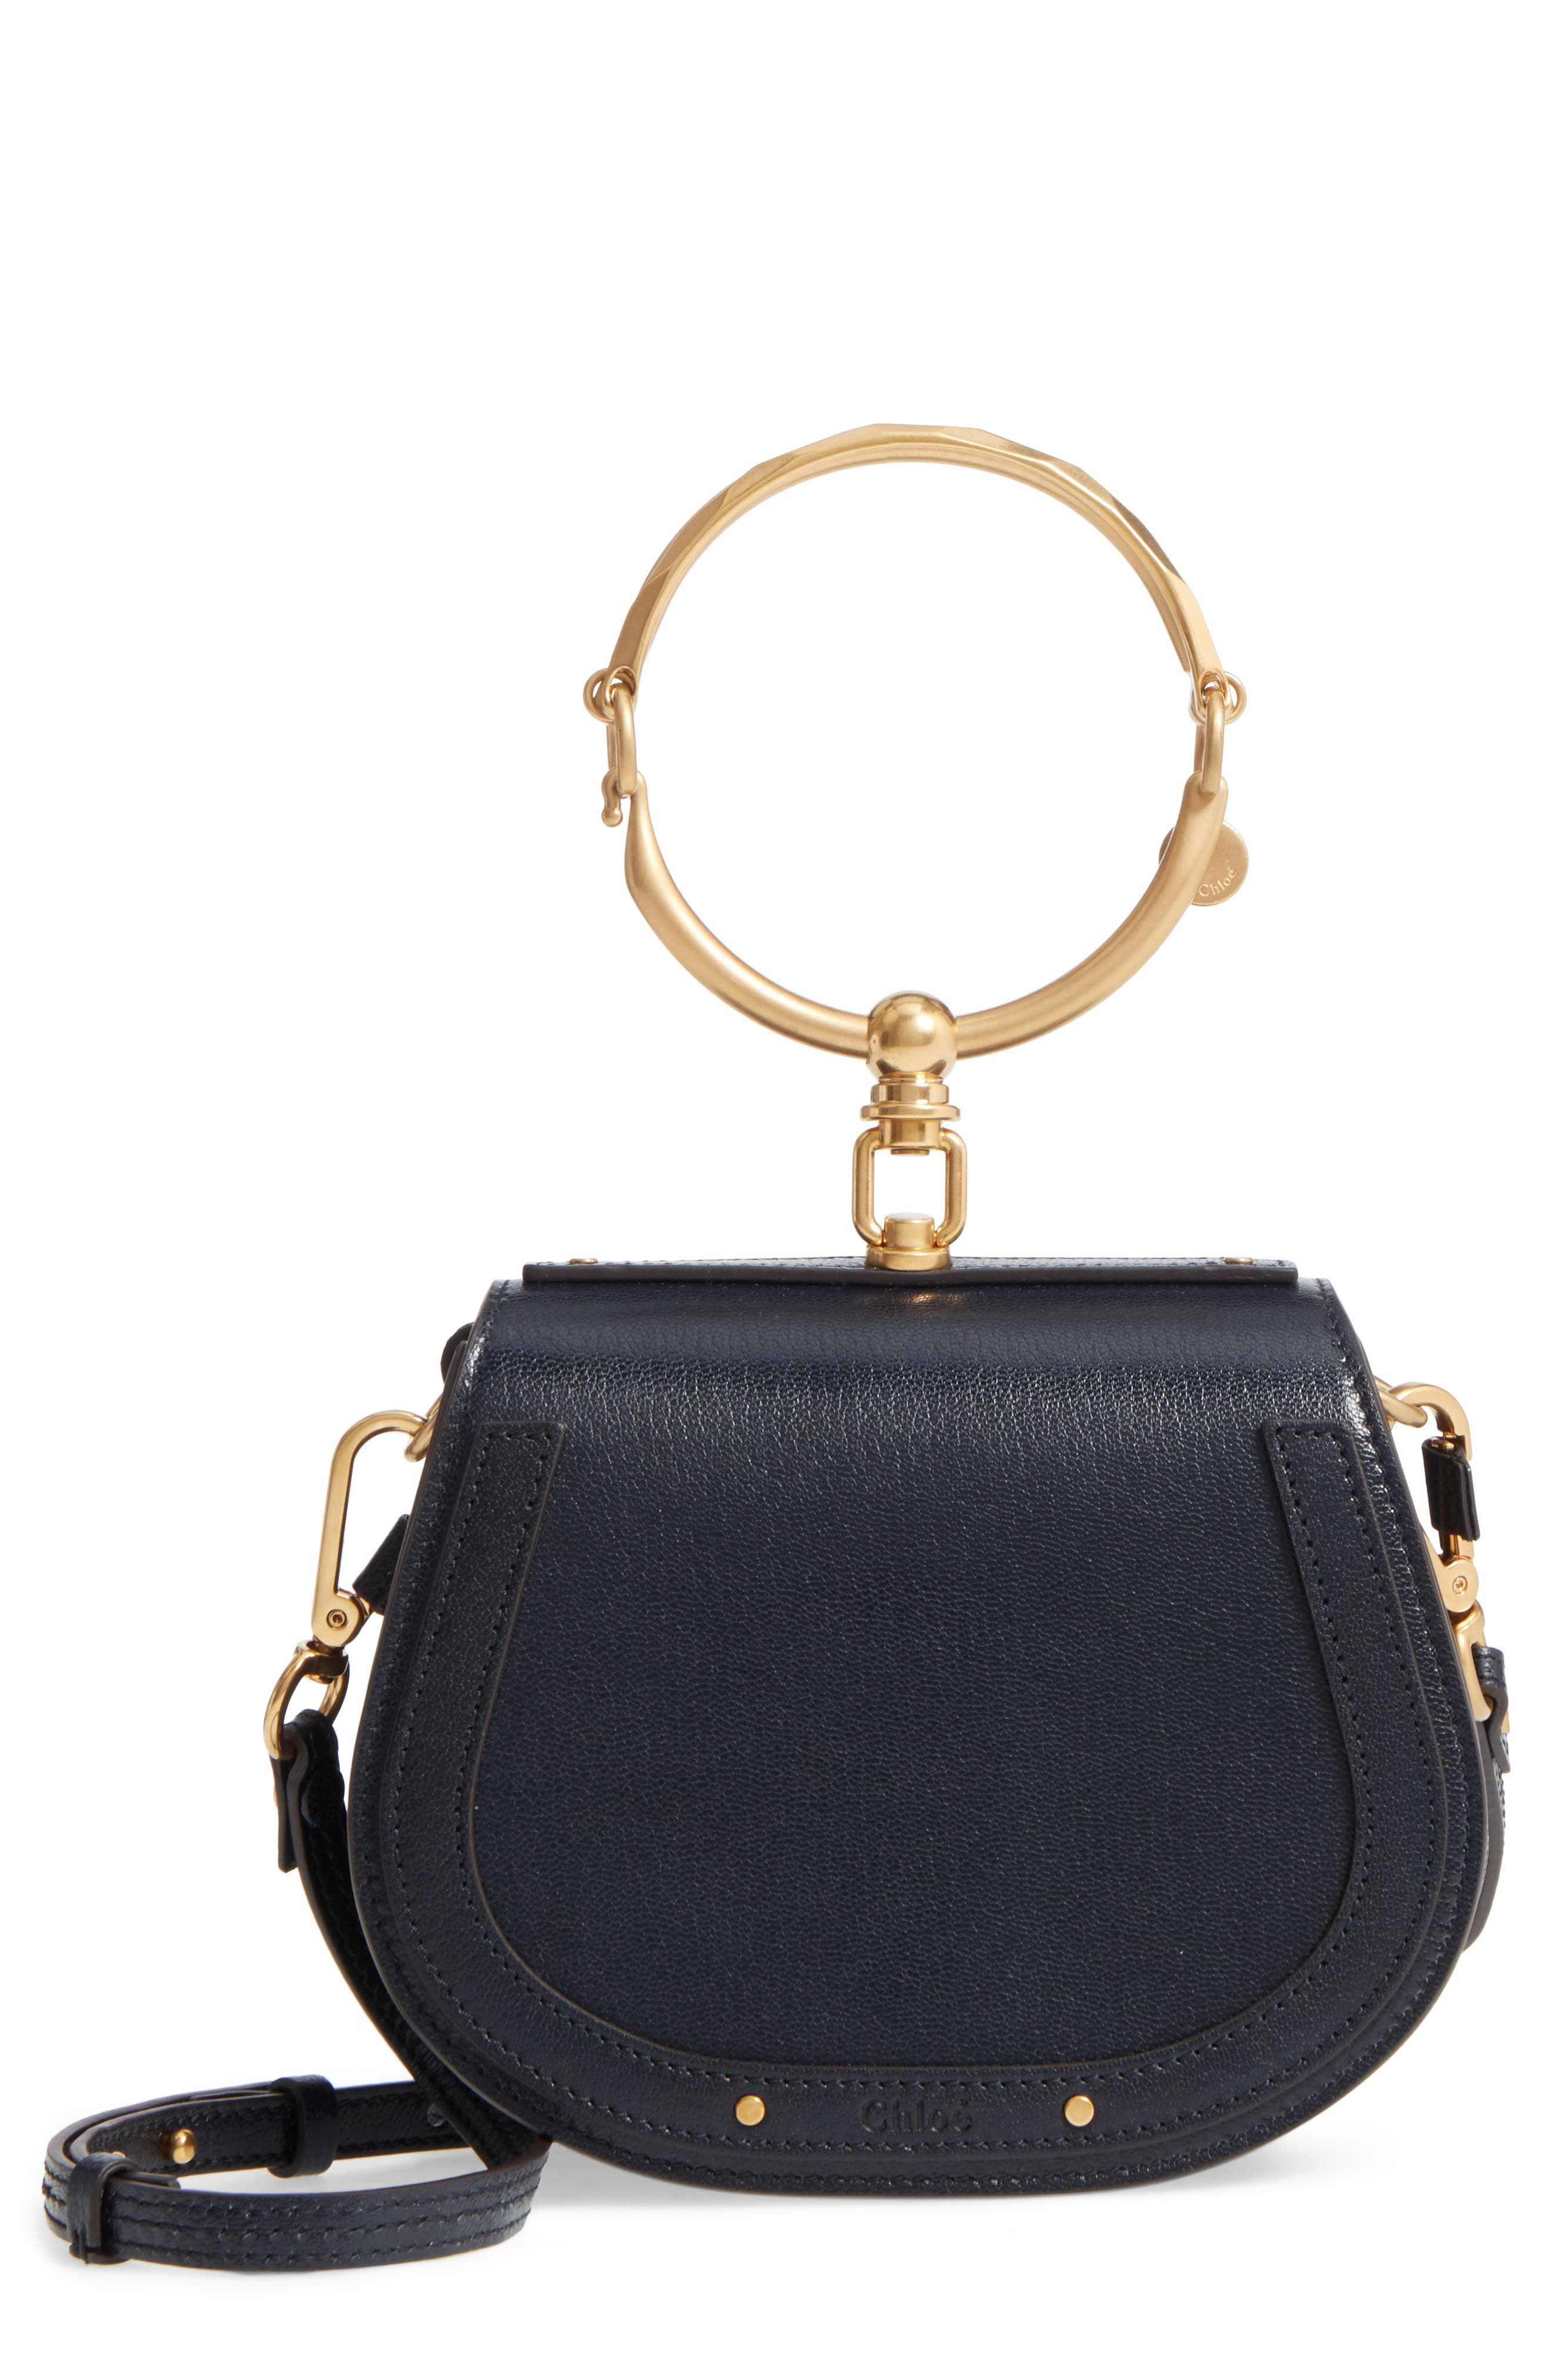 Main Image - Chloé Small Nile Leather Crossbody Bag